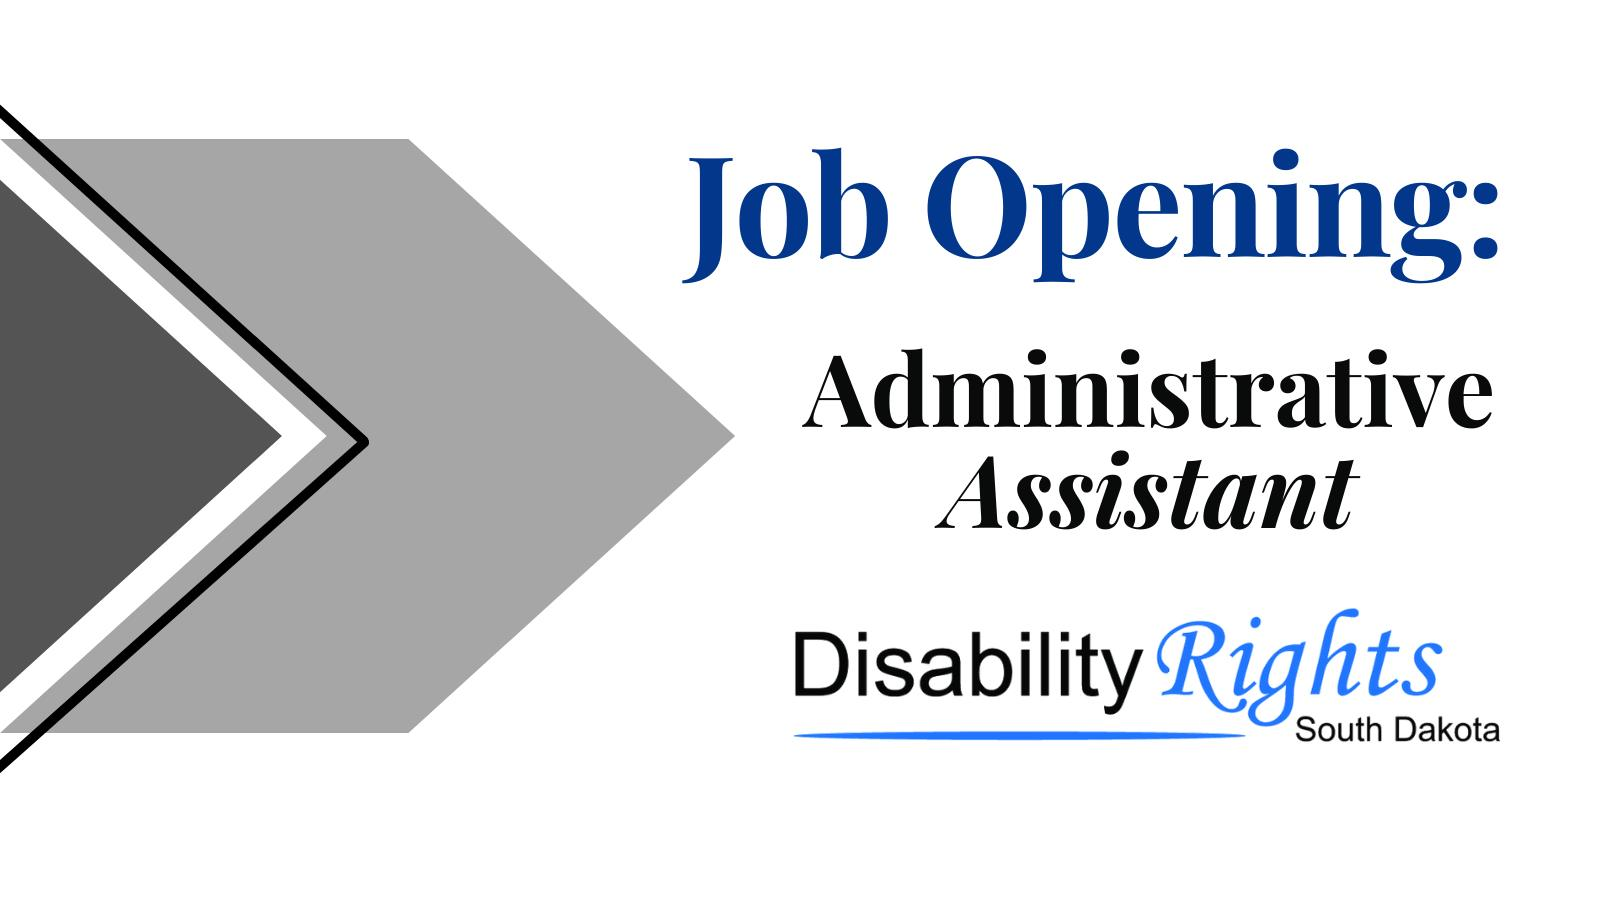 DRSD Job Opening for Administrative Assistant